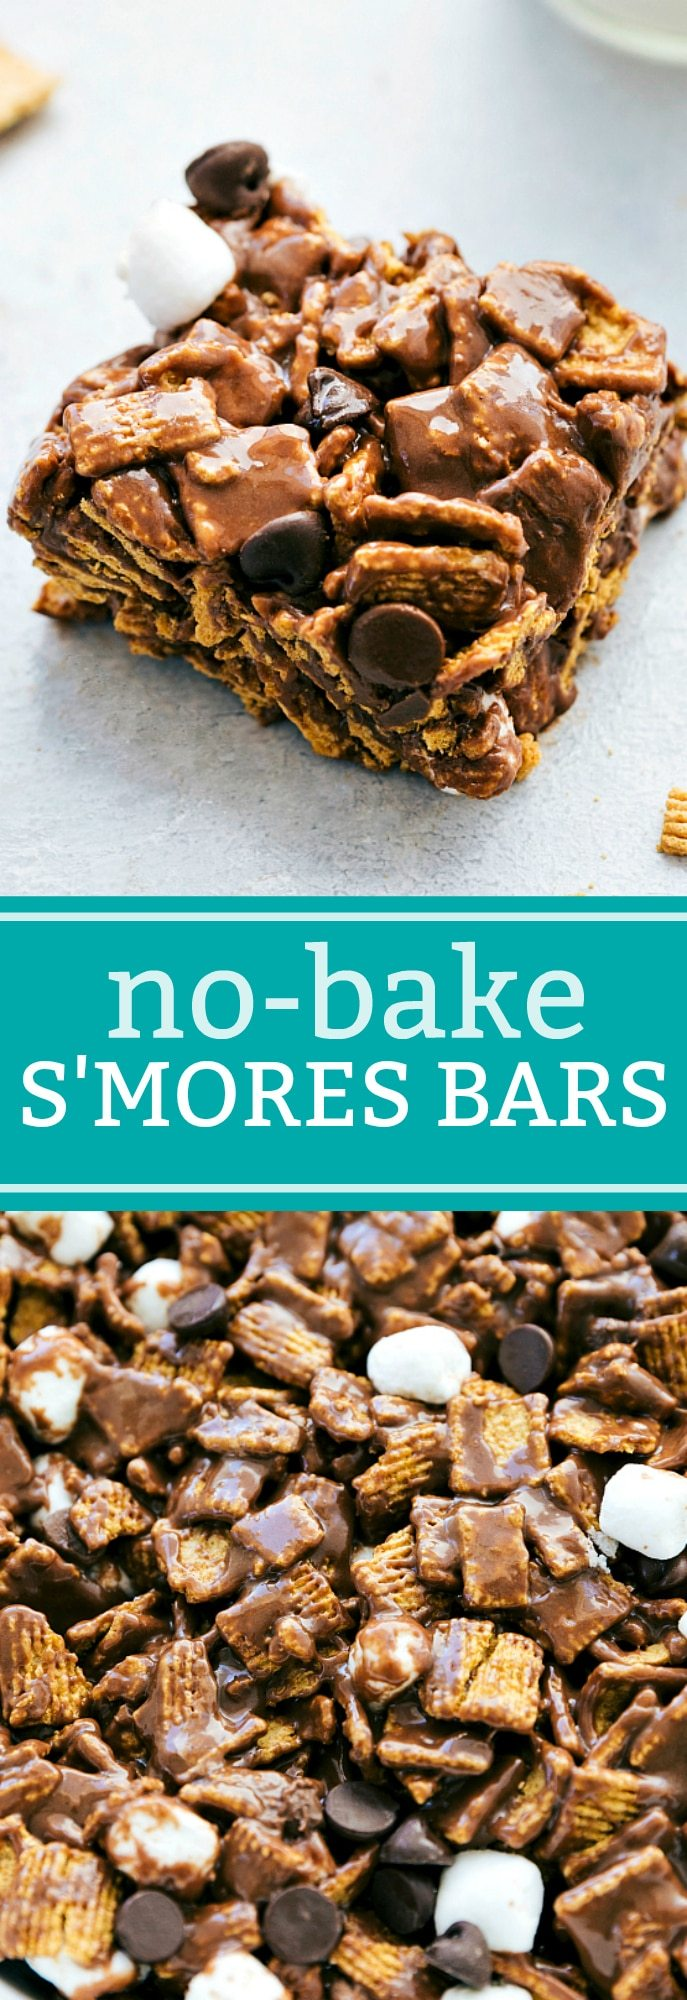 6-ingredient NO BAKE S'mores Bars!! These smores bars are unbelievably delicious and so easy to make! I chelseasmessyapron.com